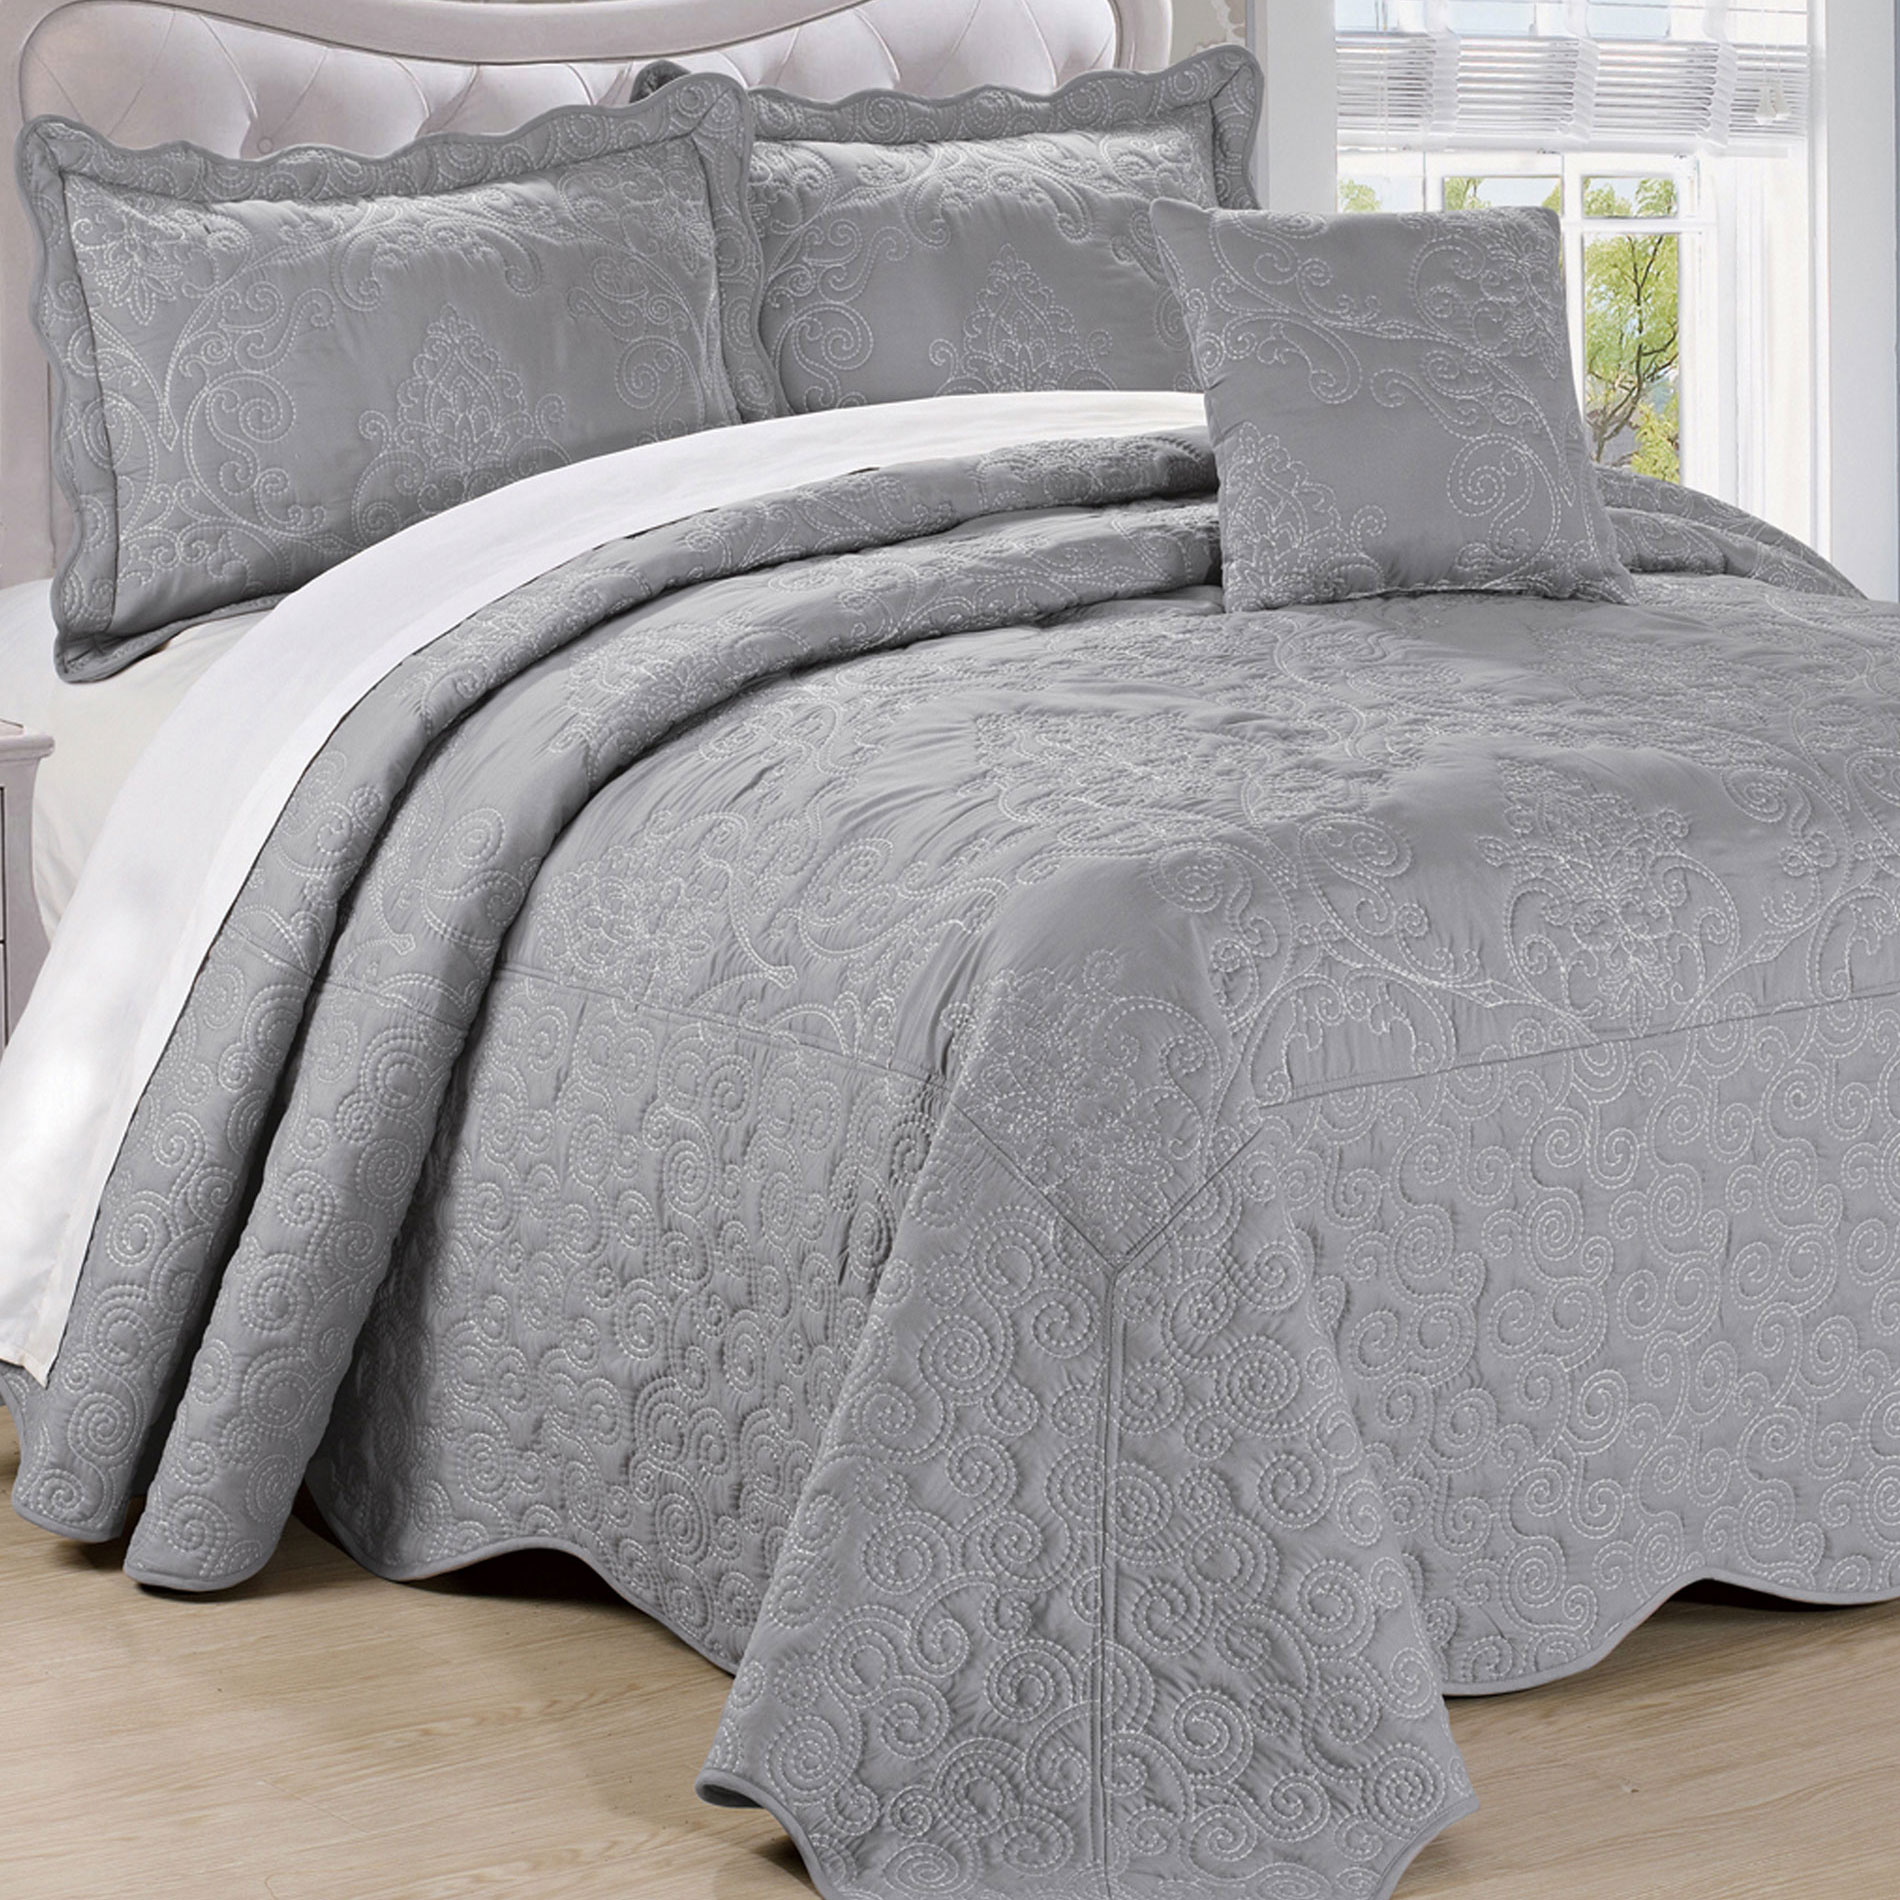 Serenta Damask Embroidered 4 Piece Bed Spread Set